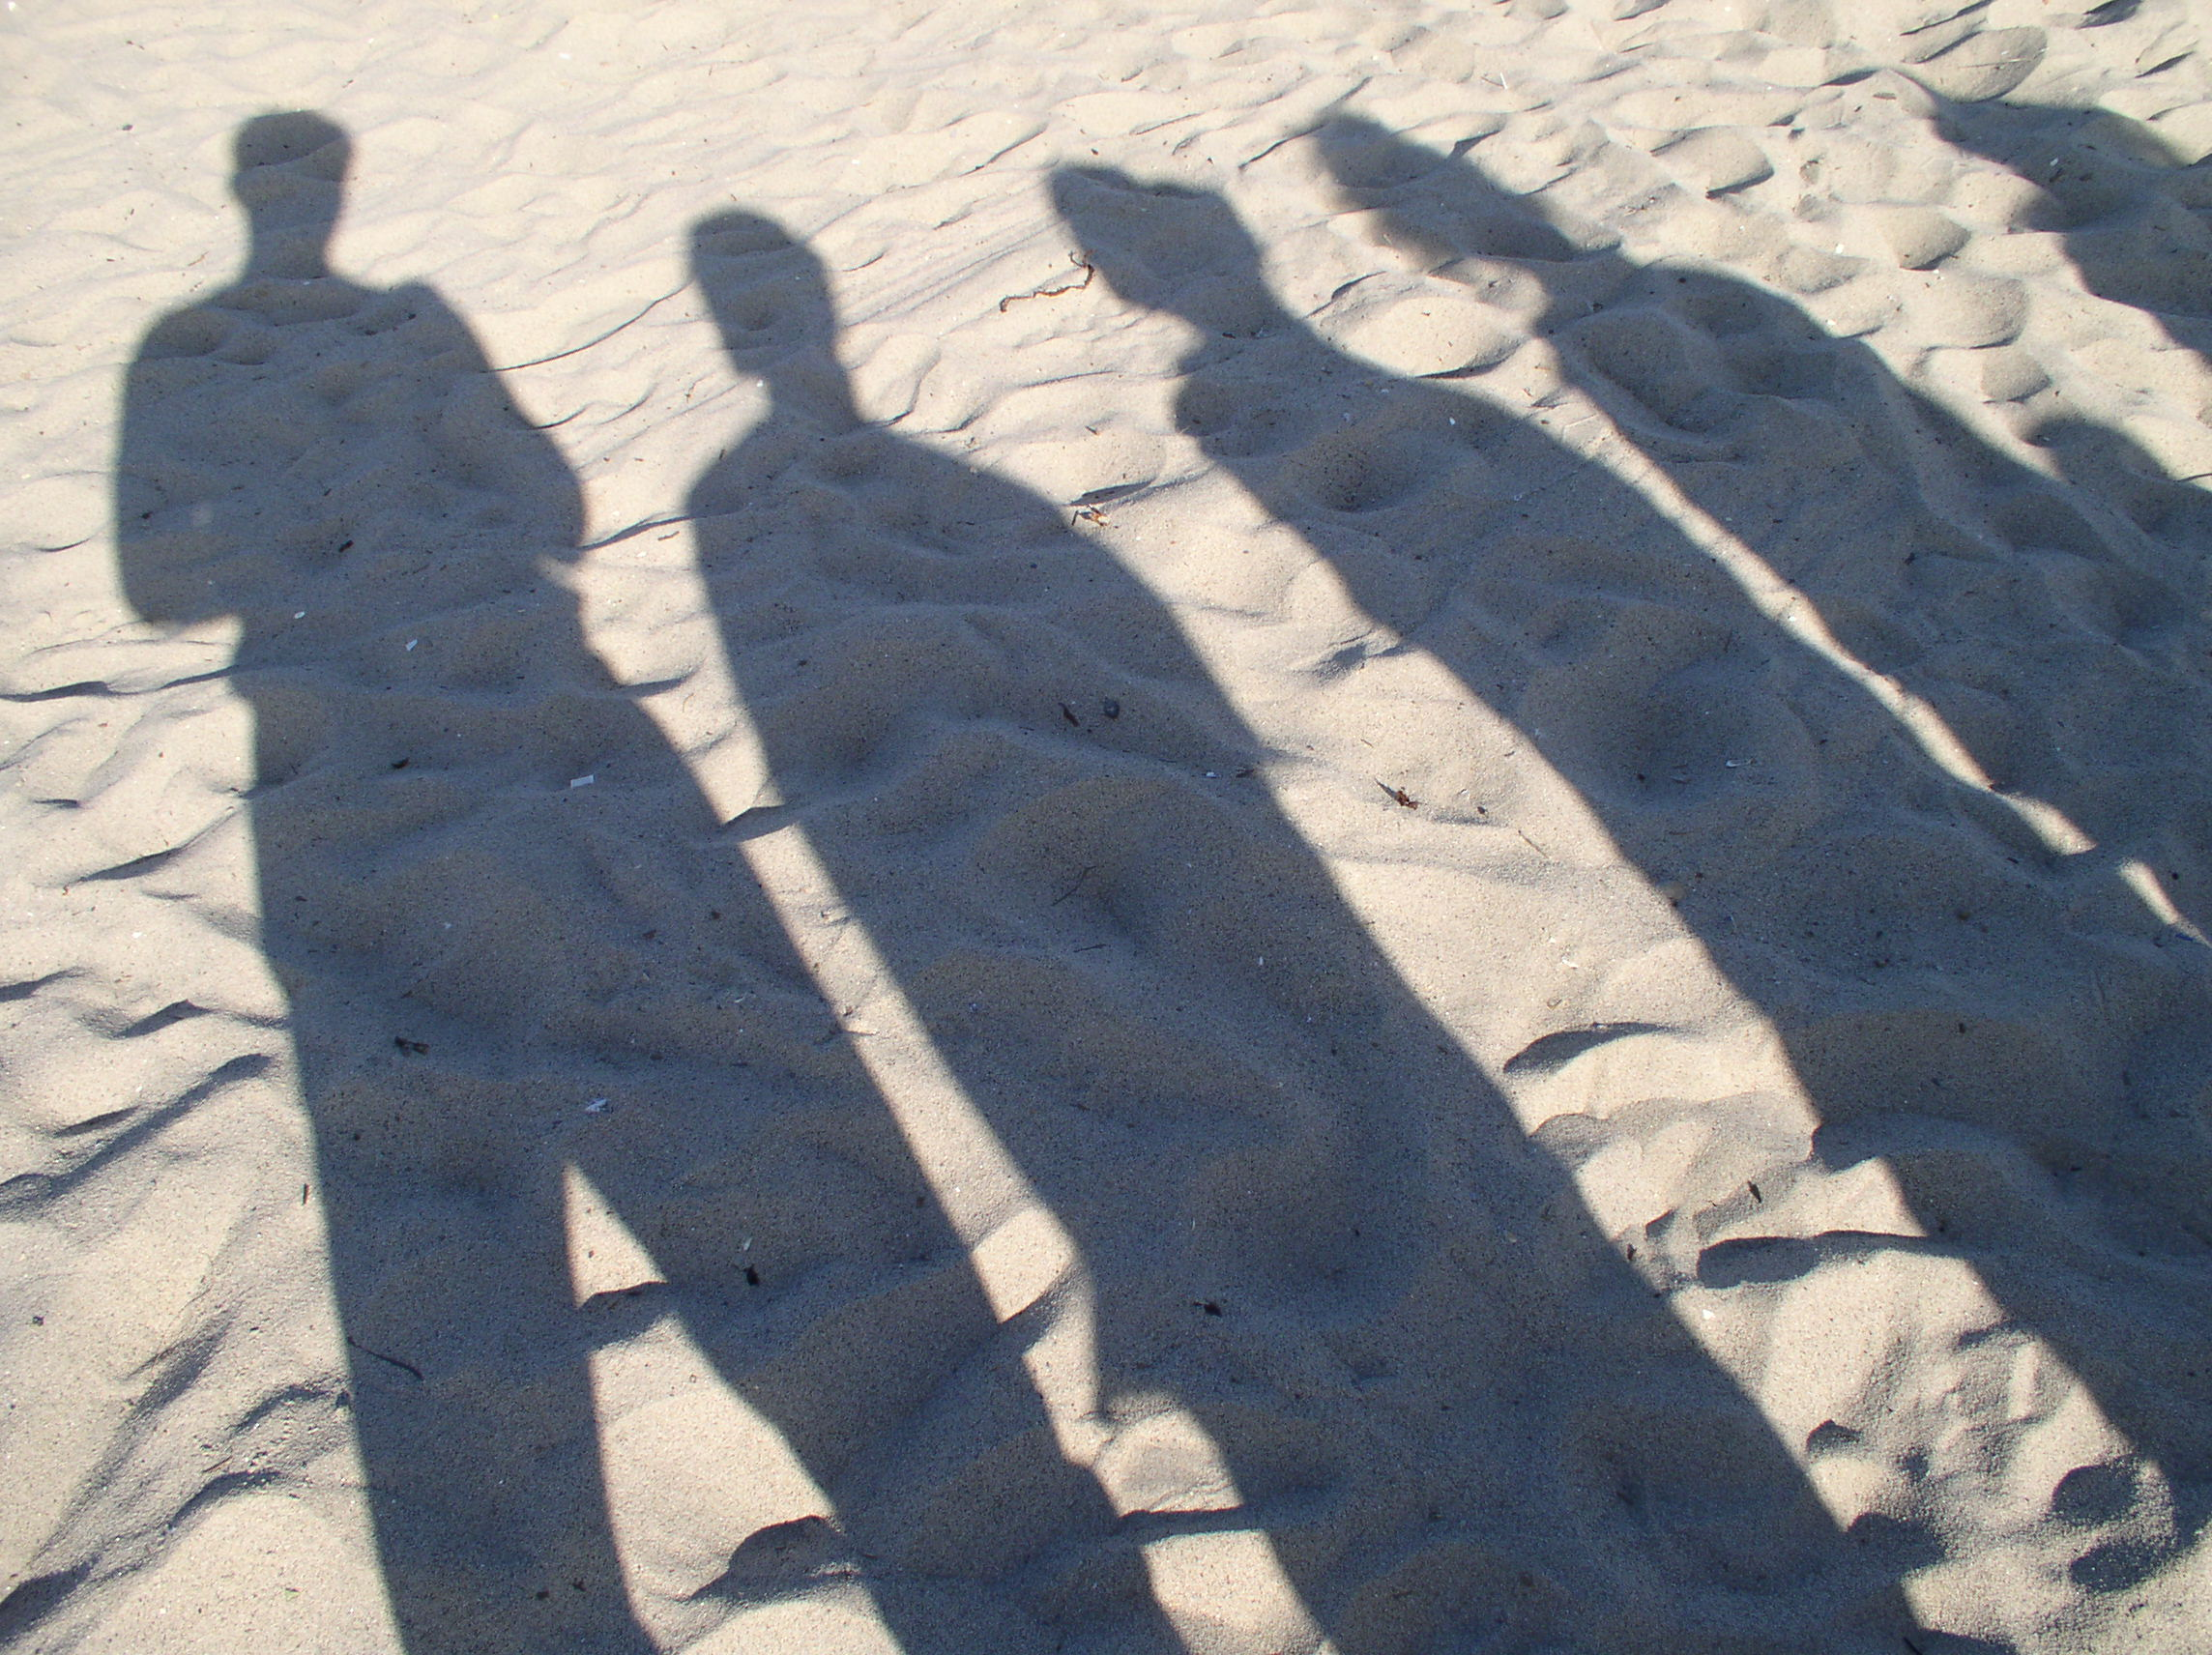 File:People Shadow.JPG - Wikimedia Commons